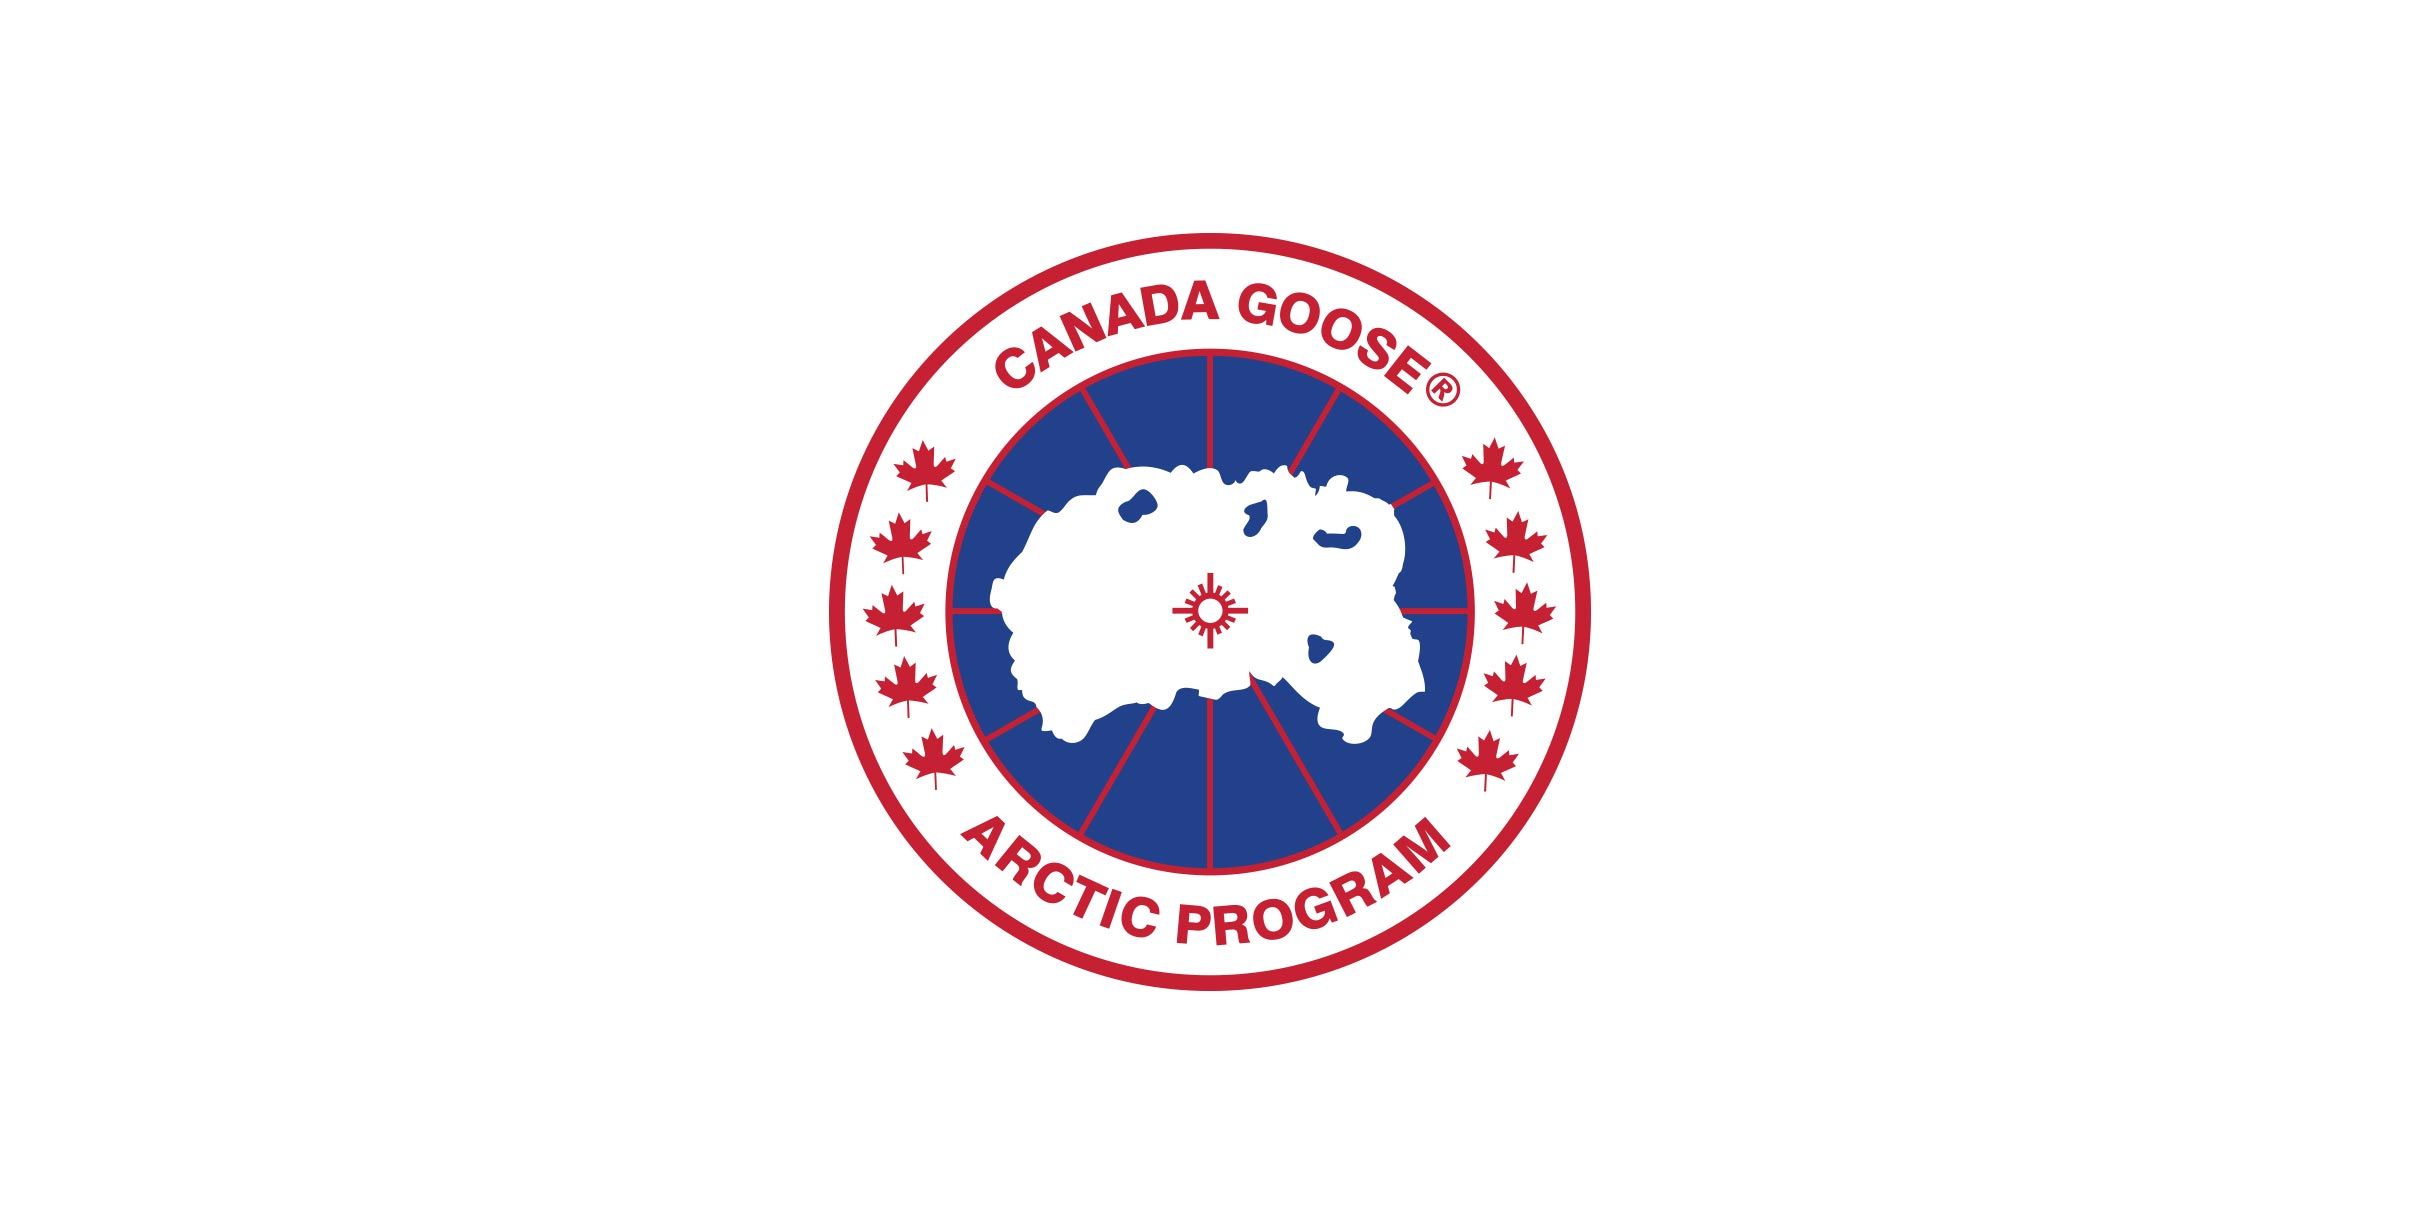 Canada Goose coats replica authentic - Drake's OVO x Canada Goose 2014 Holiday Collection | THE DROP